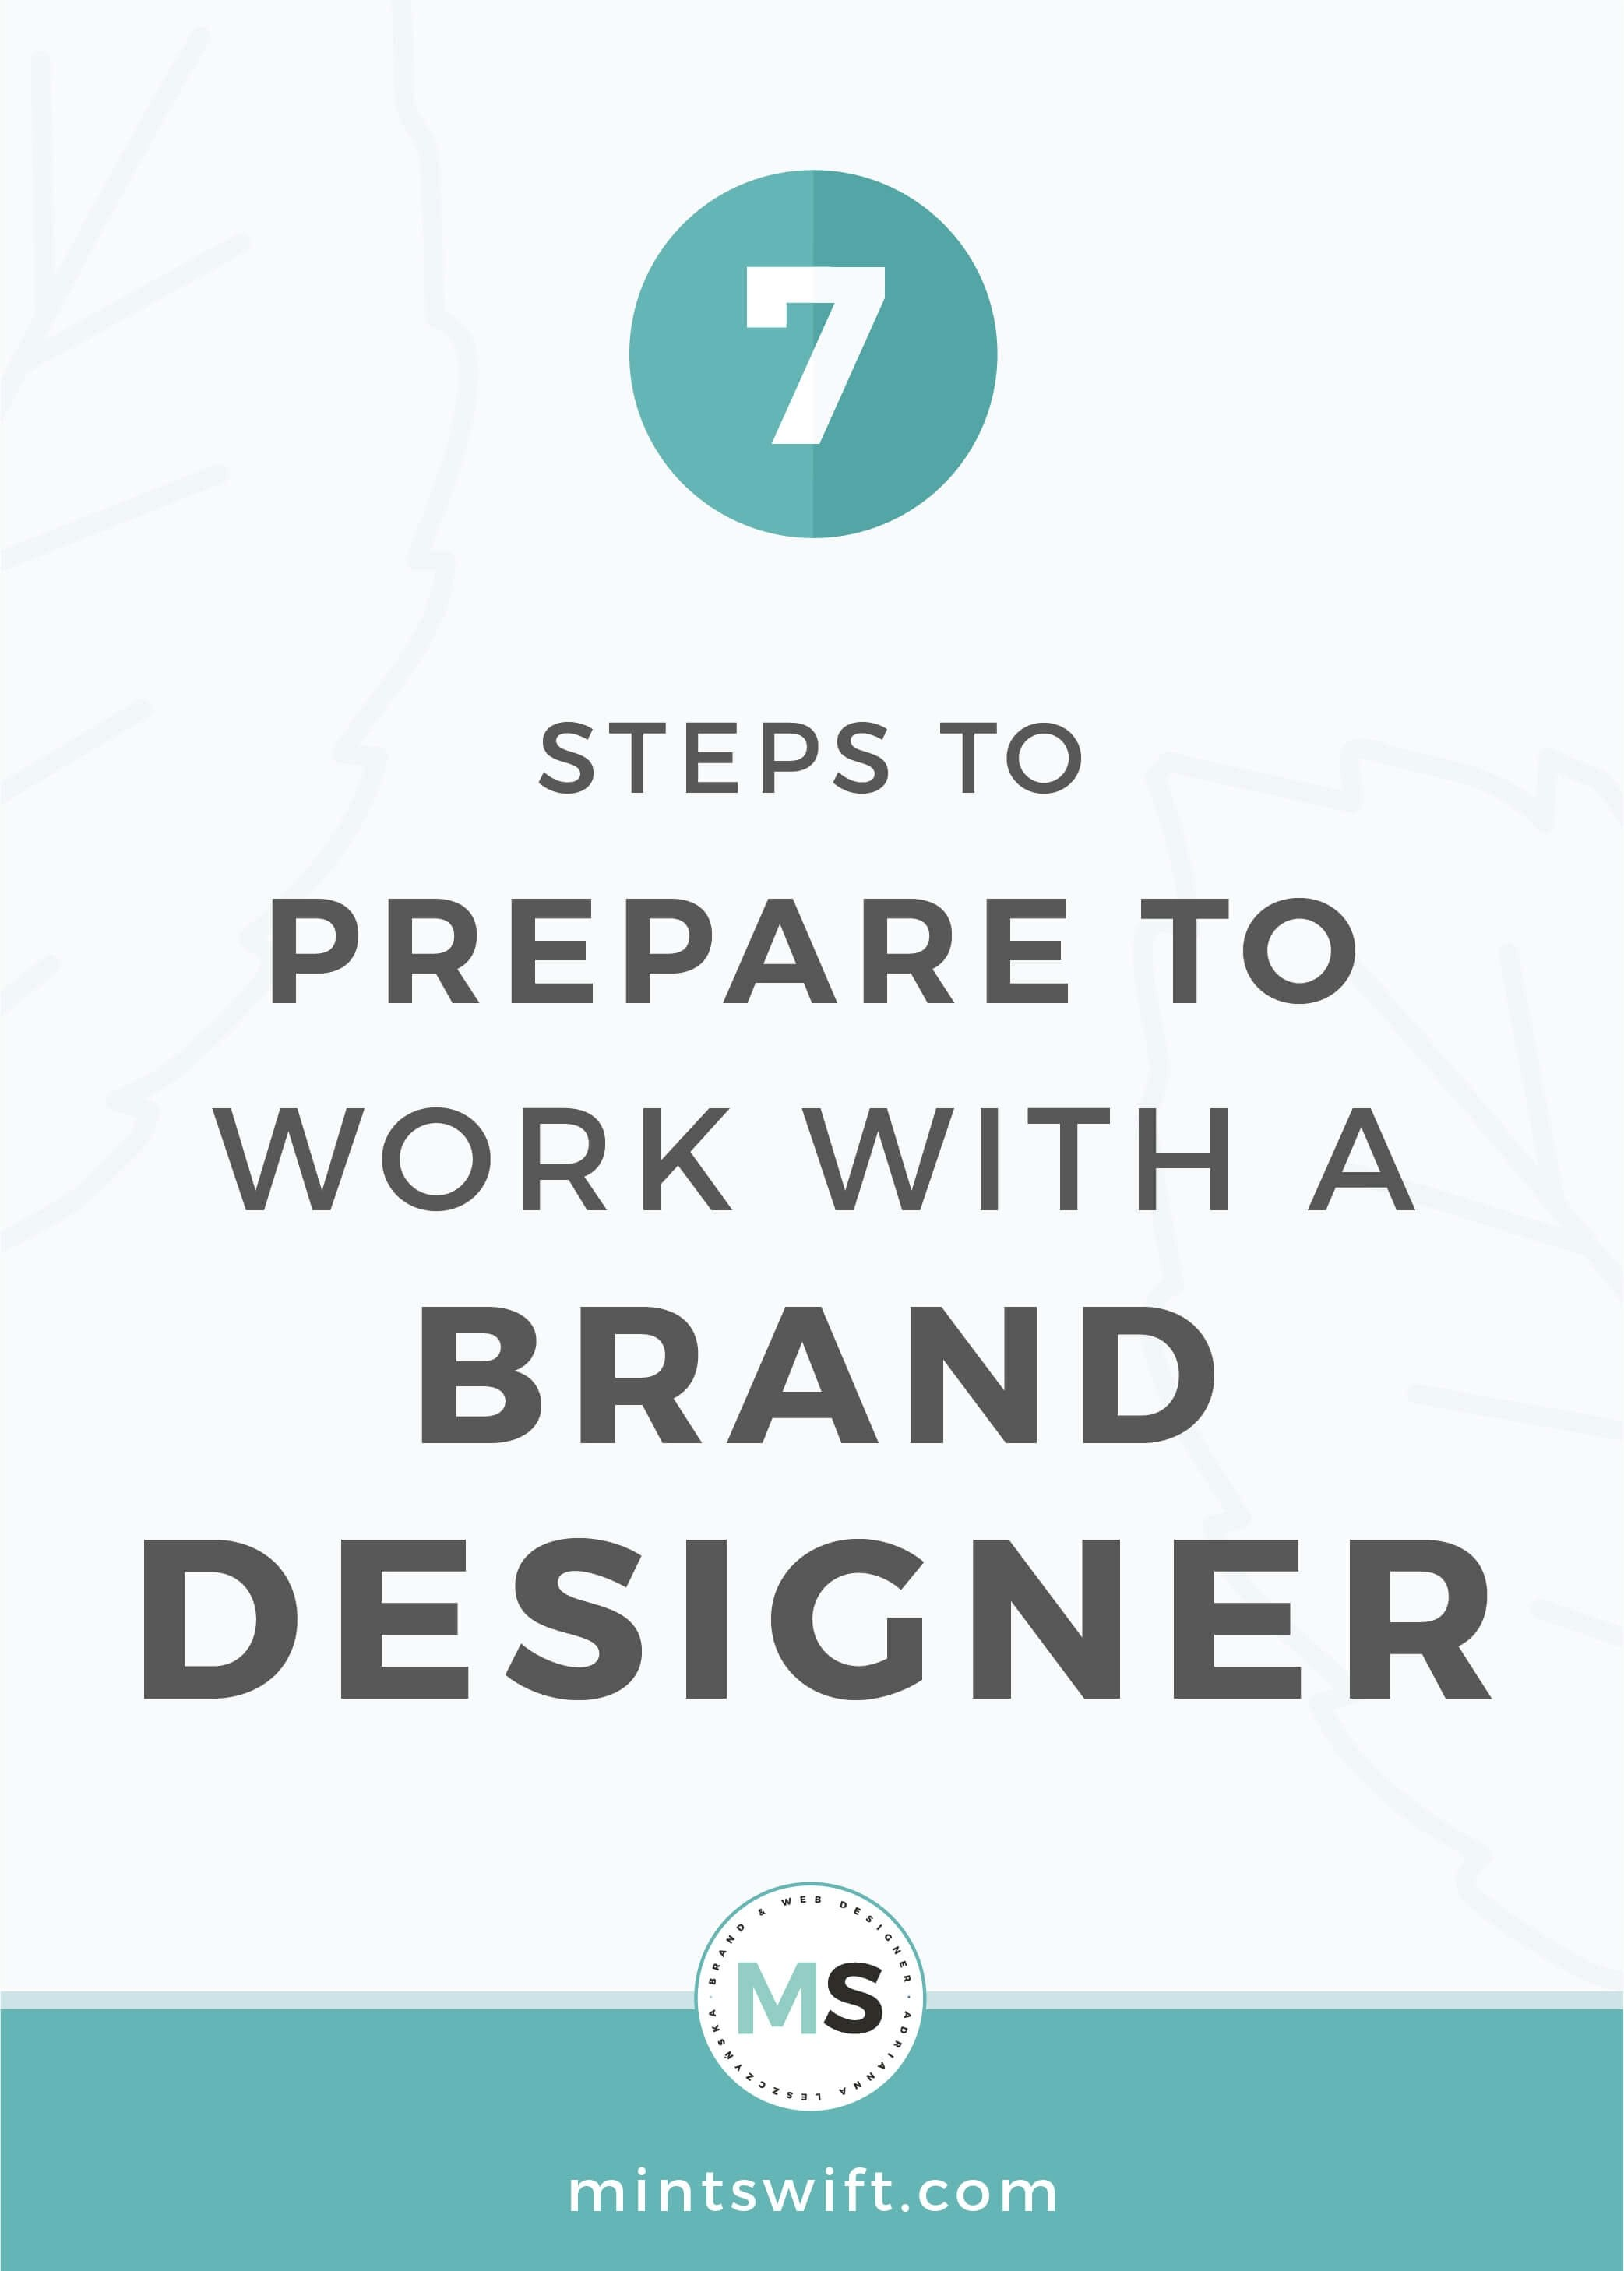 7 Steps to Prepare to Work With A Brand Designer - MintSwift